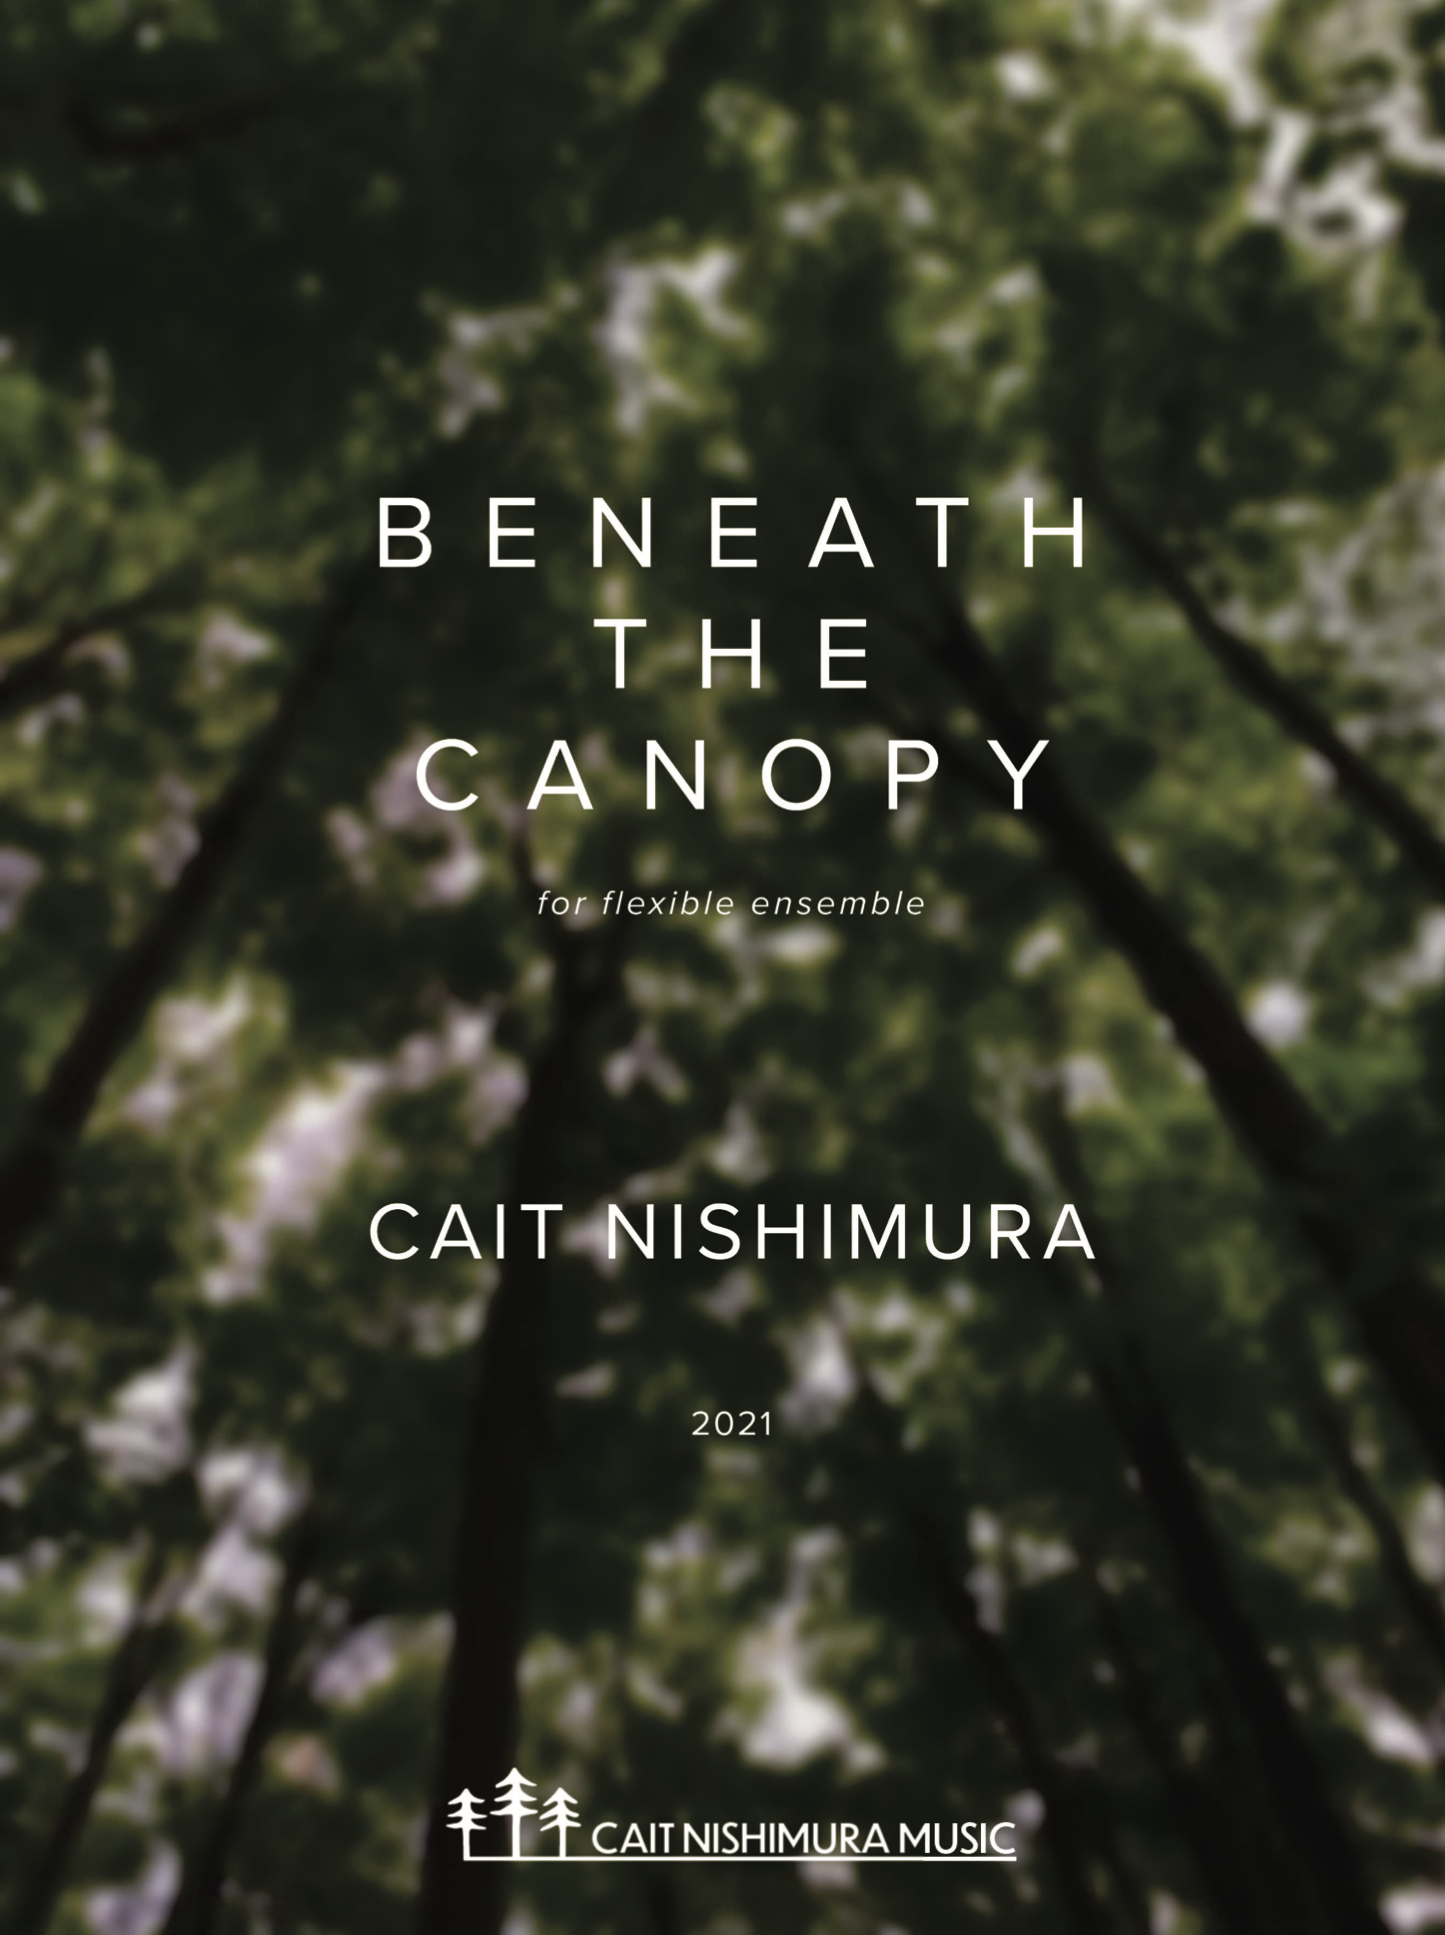 Beneath The Canopy (Flex Version, Score Only) by Cair Nishimura